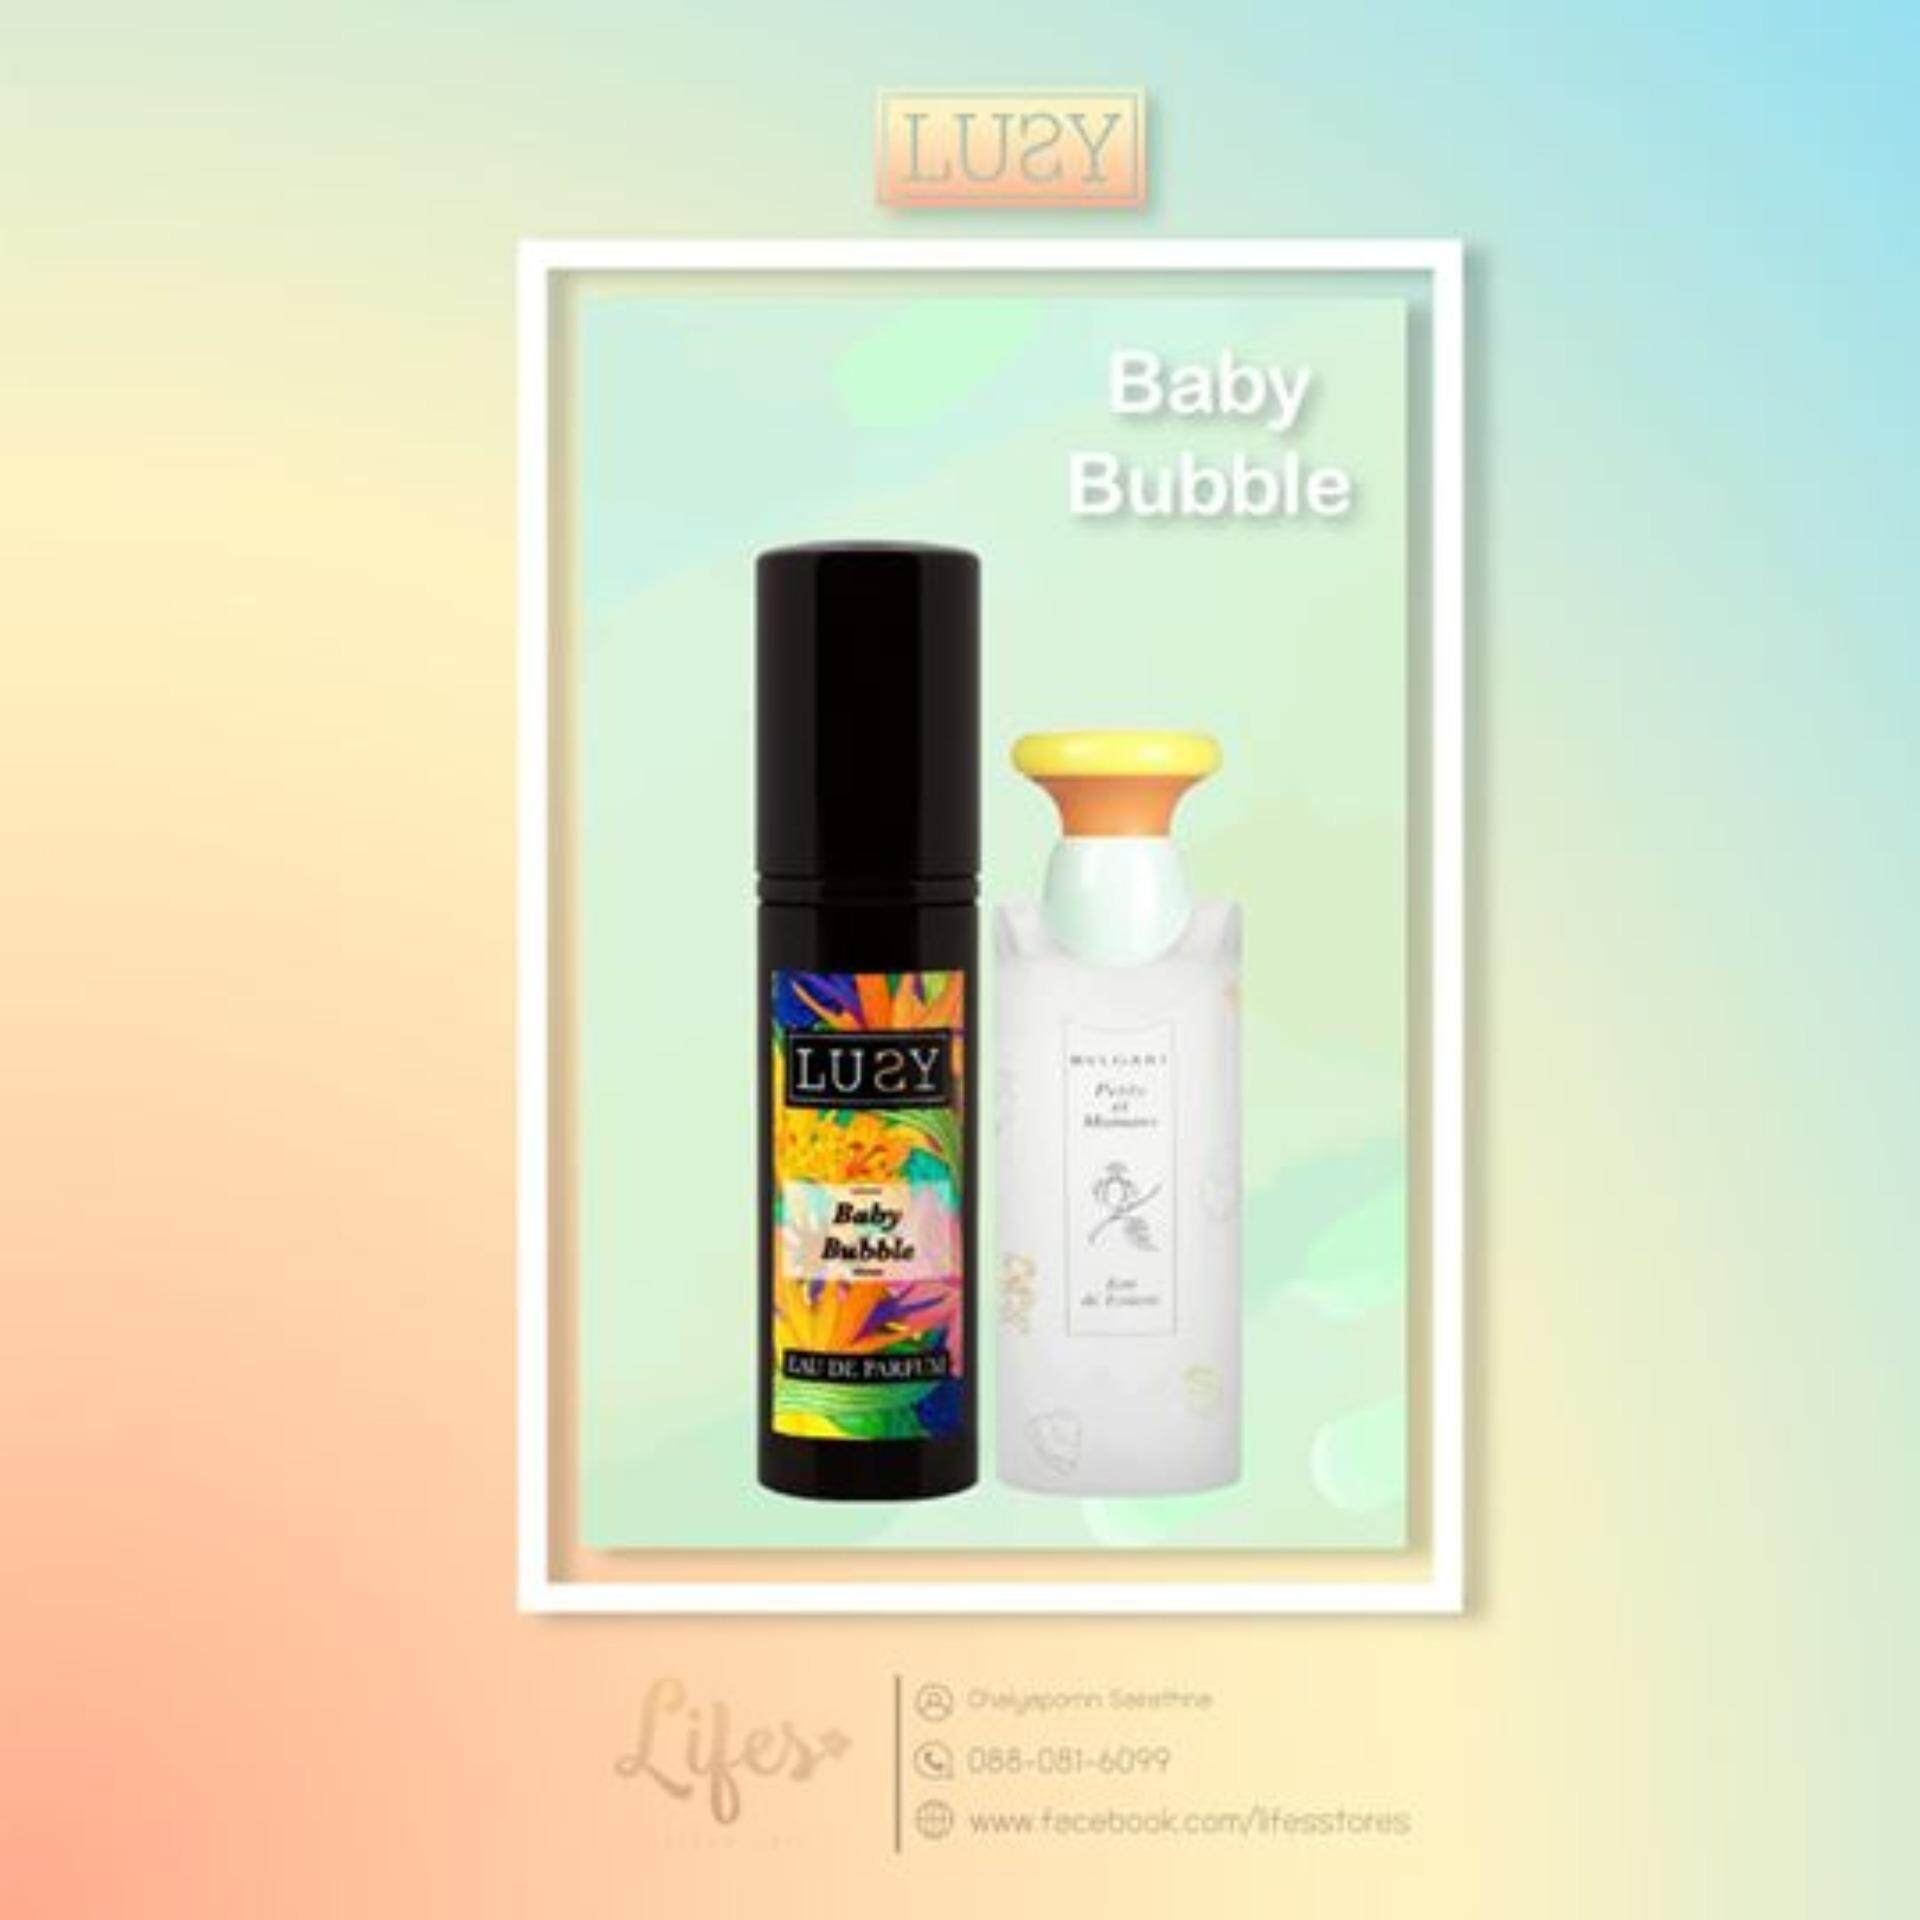 LUSY NO.09 BABY BUBBLE